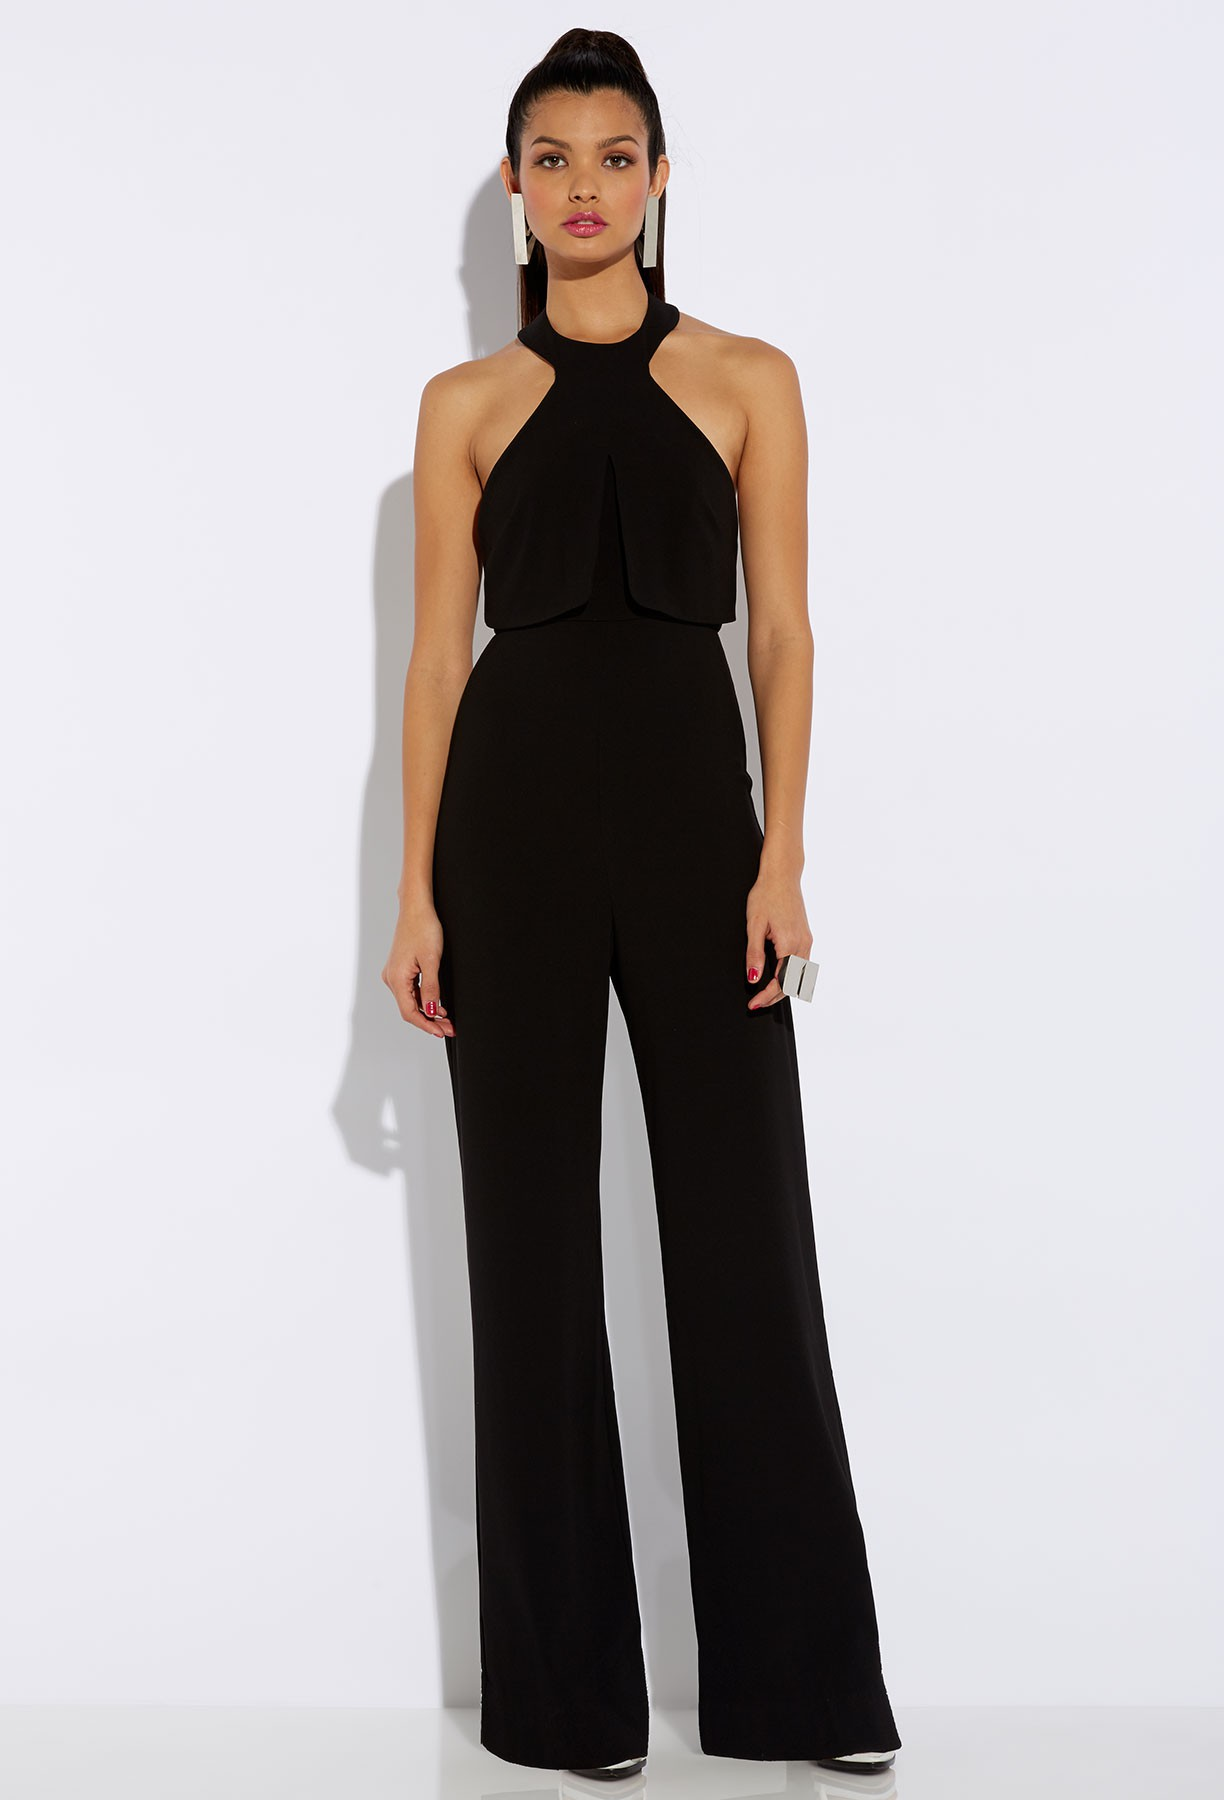 Product Details. You can never go wrong with a black jumpsuit. The gold detail and halter neck make it super sleek and chic. Worth adding to your wish list.